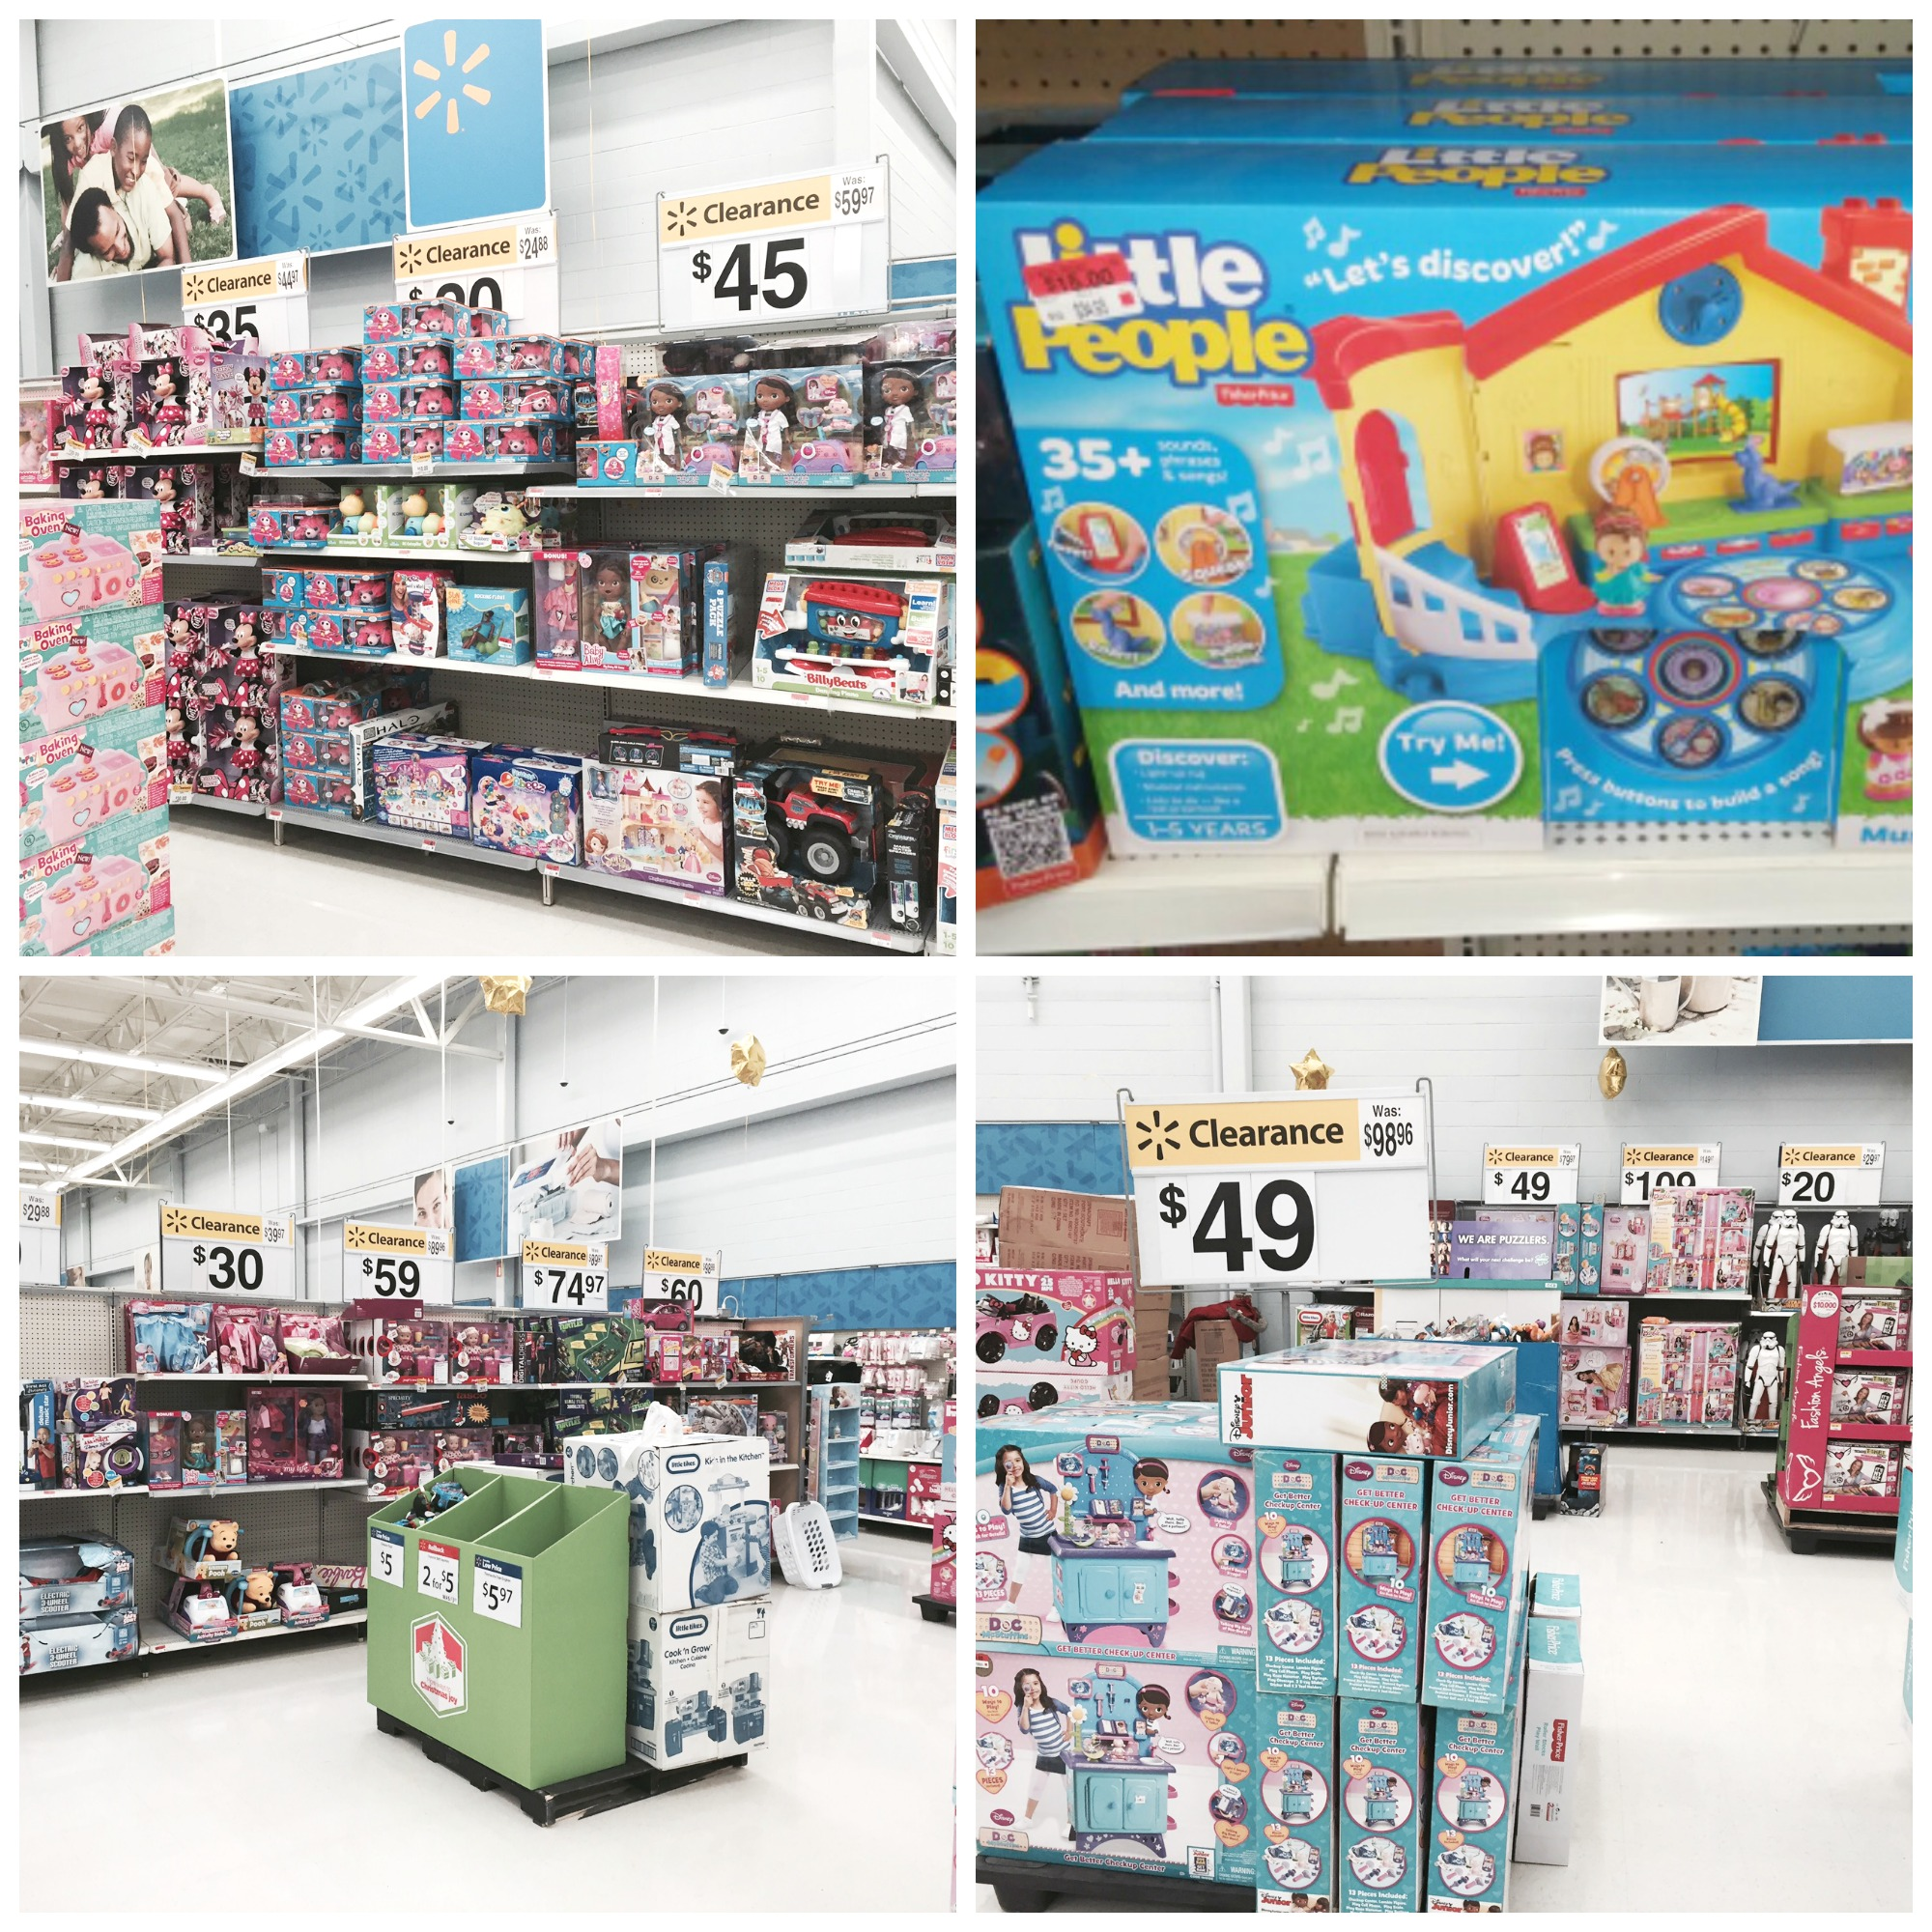 Walmart Toys Clearance : Walmart s crazy toy clearance sale freebies deals